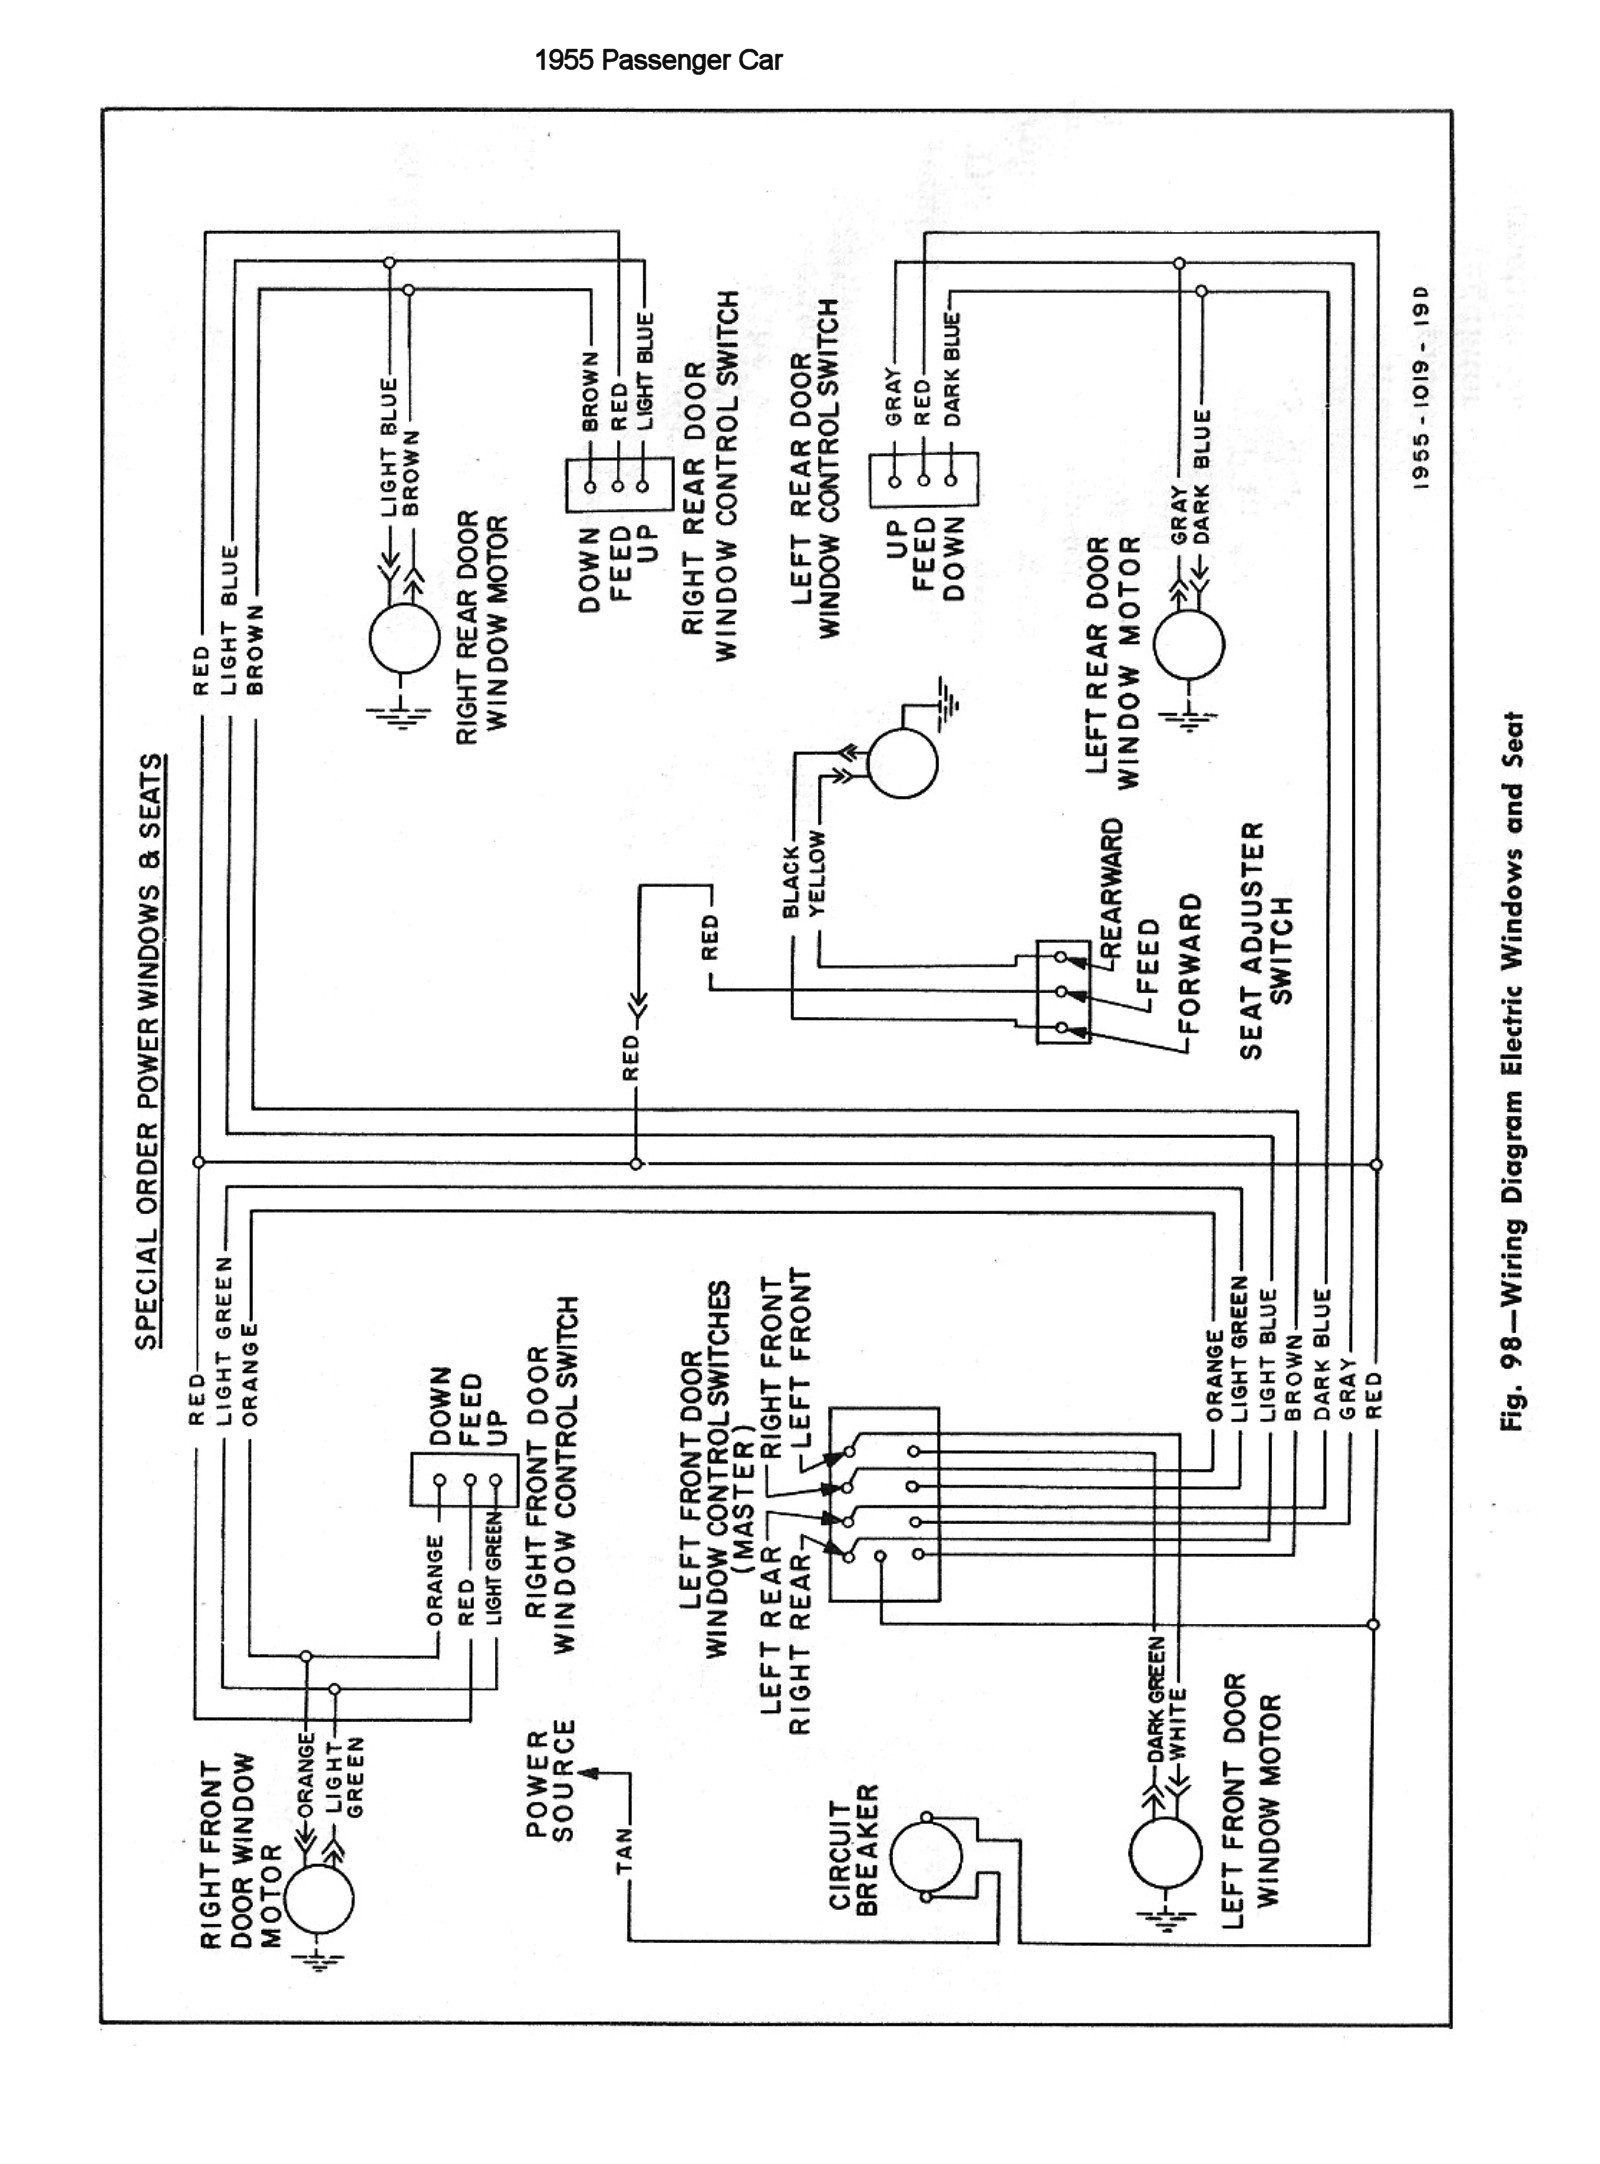 1955 Chevy Turn Signal Wiring    Diagram      WiringDiagram